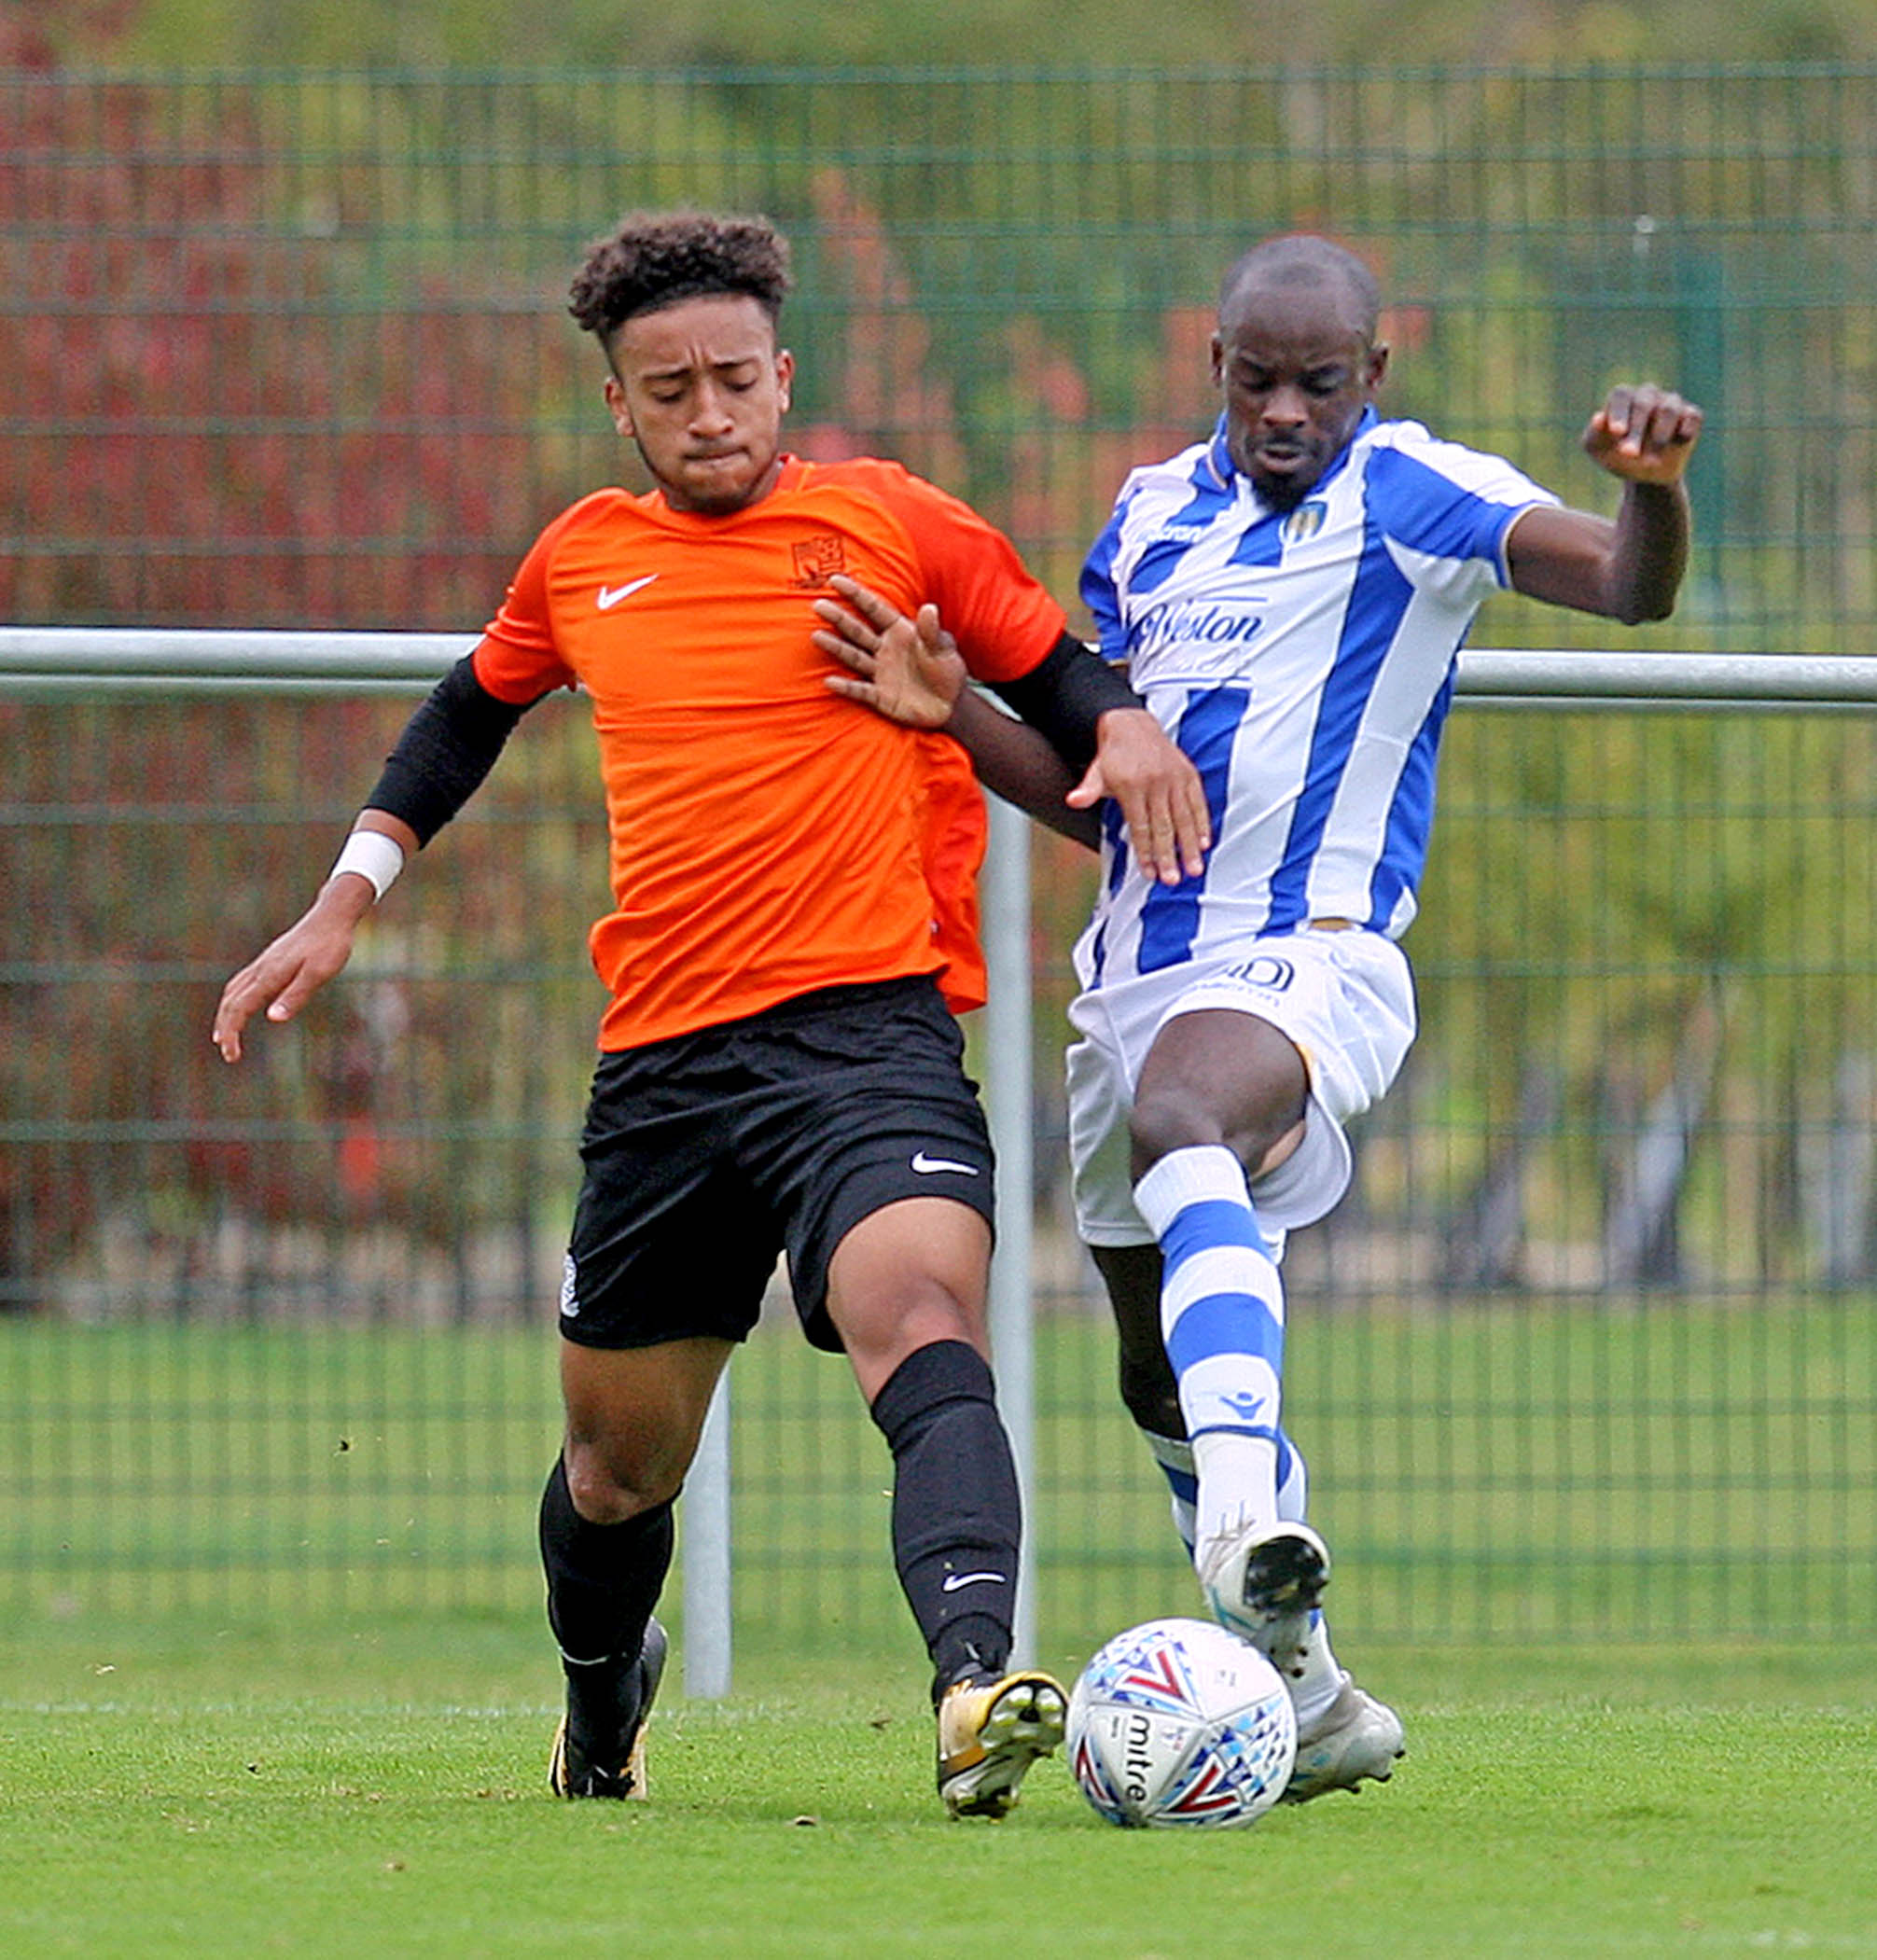 Battle - Sanmi Odelusi (right) competes for possession during Colchester United's Central League Cup group match against Southend United at Florence Park Picture: NICKY HAYES PHOTOGRAPHY